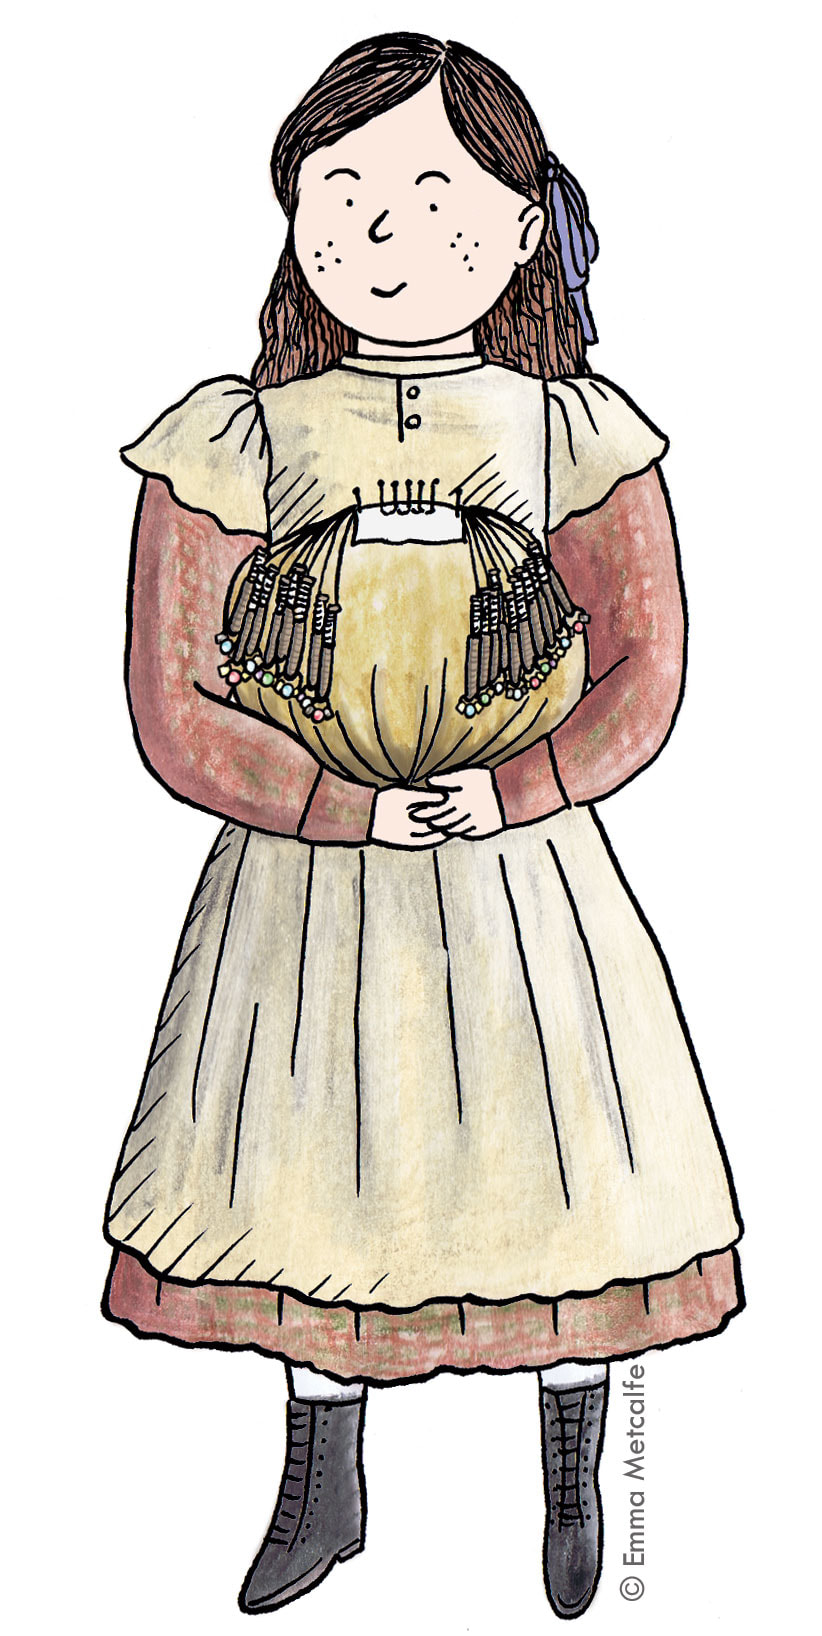 Illustration of girl lace school pupil holding lace pillow and bobbins for lacemaking in Victorian times by Emma Metcalfe